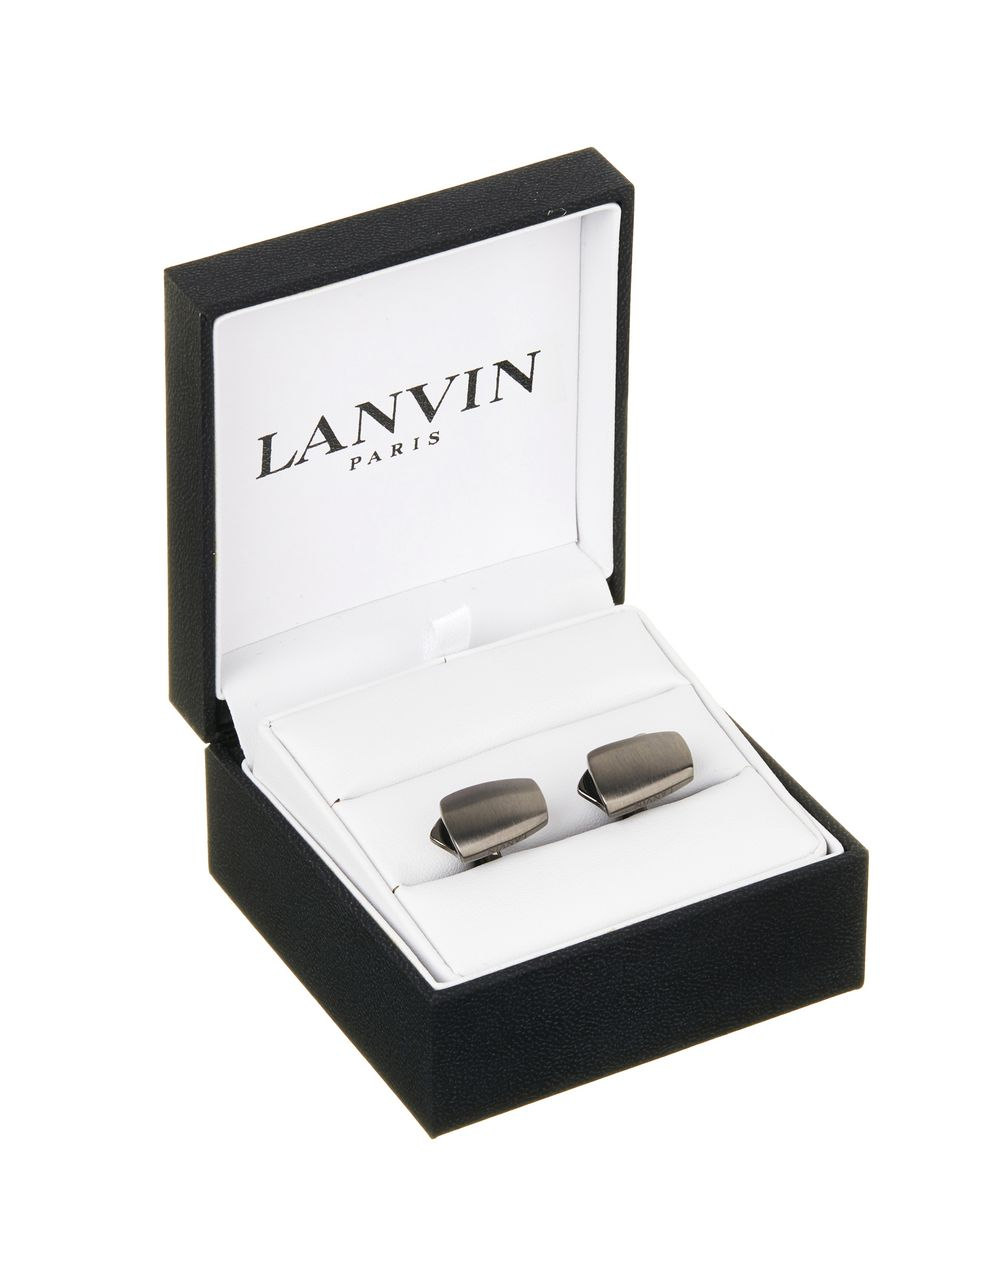 CURVED CUFF LINKS IN RUTHENIUM METAL - Lanvin